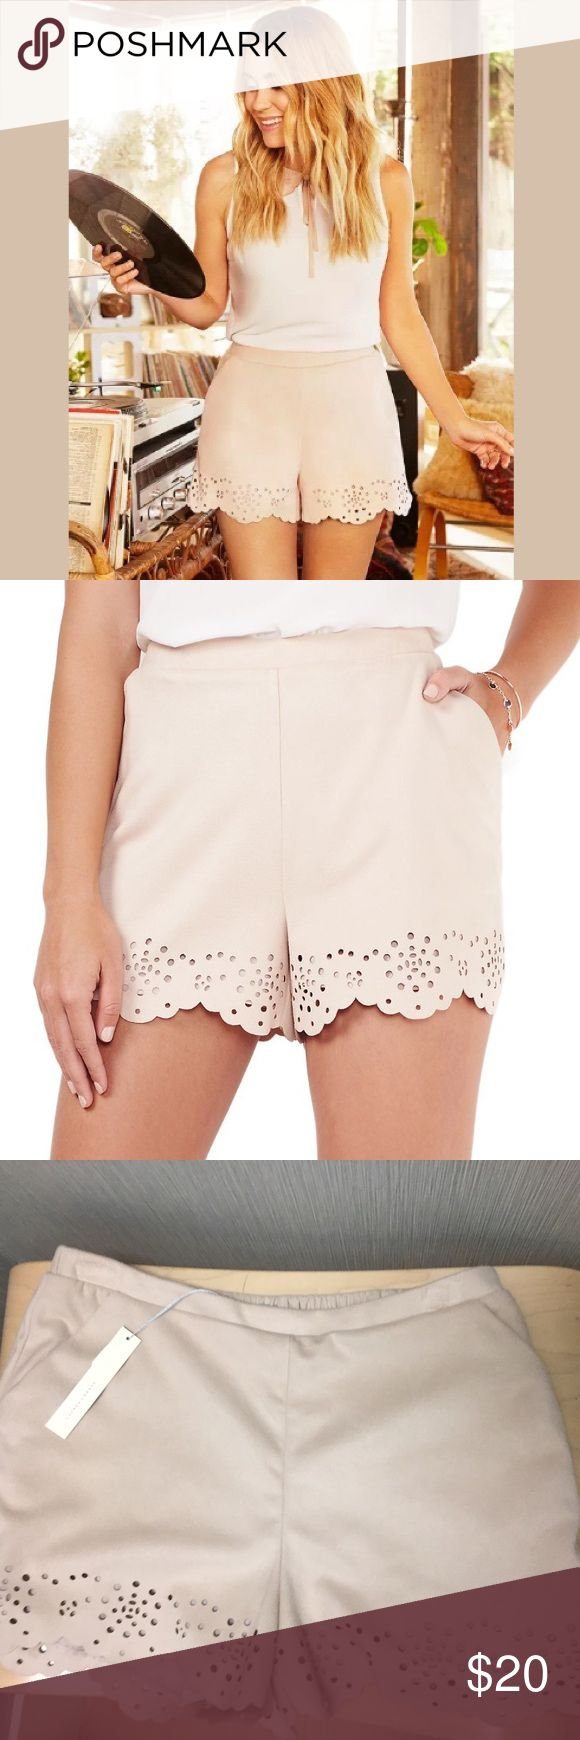 New LC Lauren Conrad Faux Suede Eyelet Shorts The scalloped eyelet hem adds a sophisticated touch to your casual style. In Natural Blush. New with tags! PRODUCT FEATURES Scalloped hem with eyelet details 2-pocket Faux-suede construction Lined LC Lauren Conrad Shorts